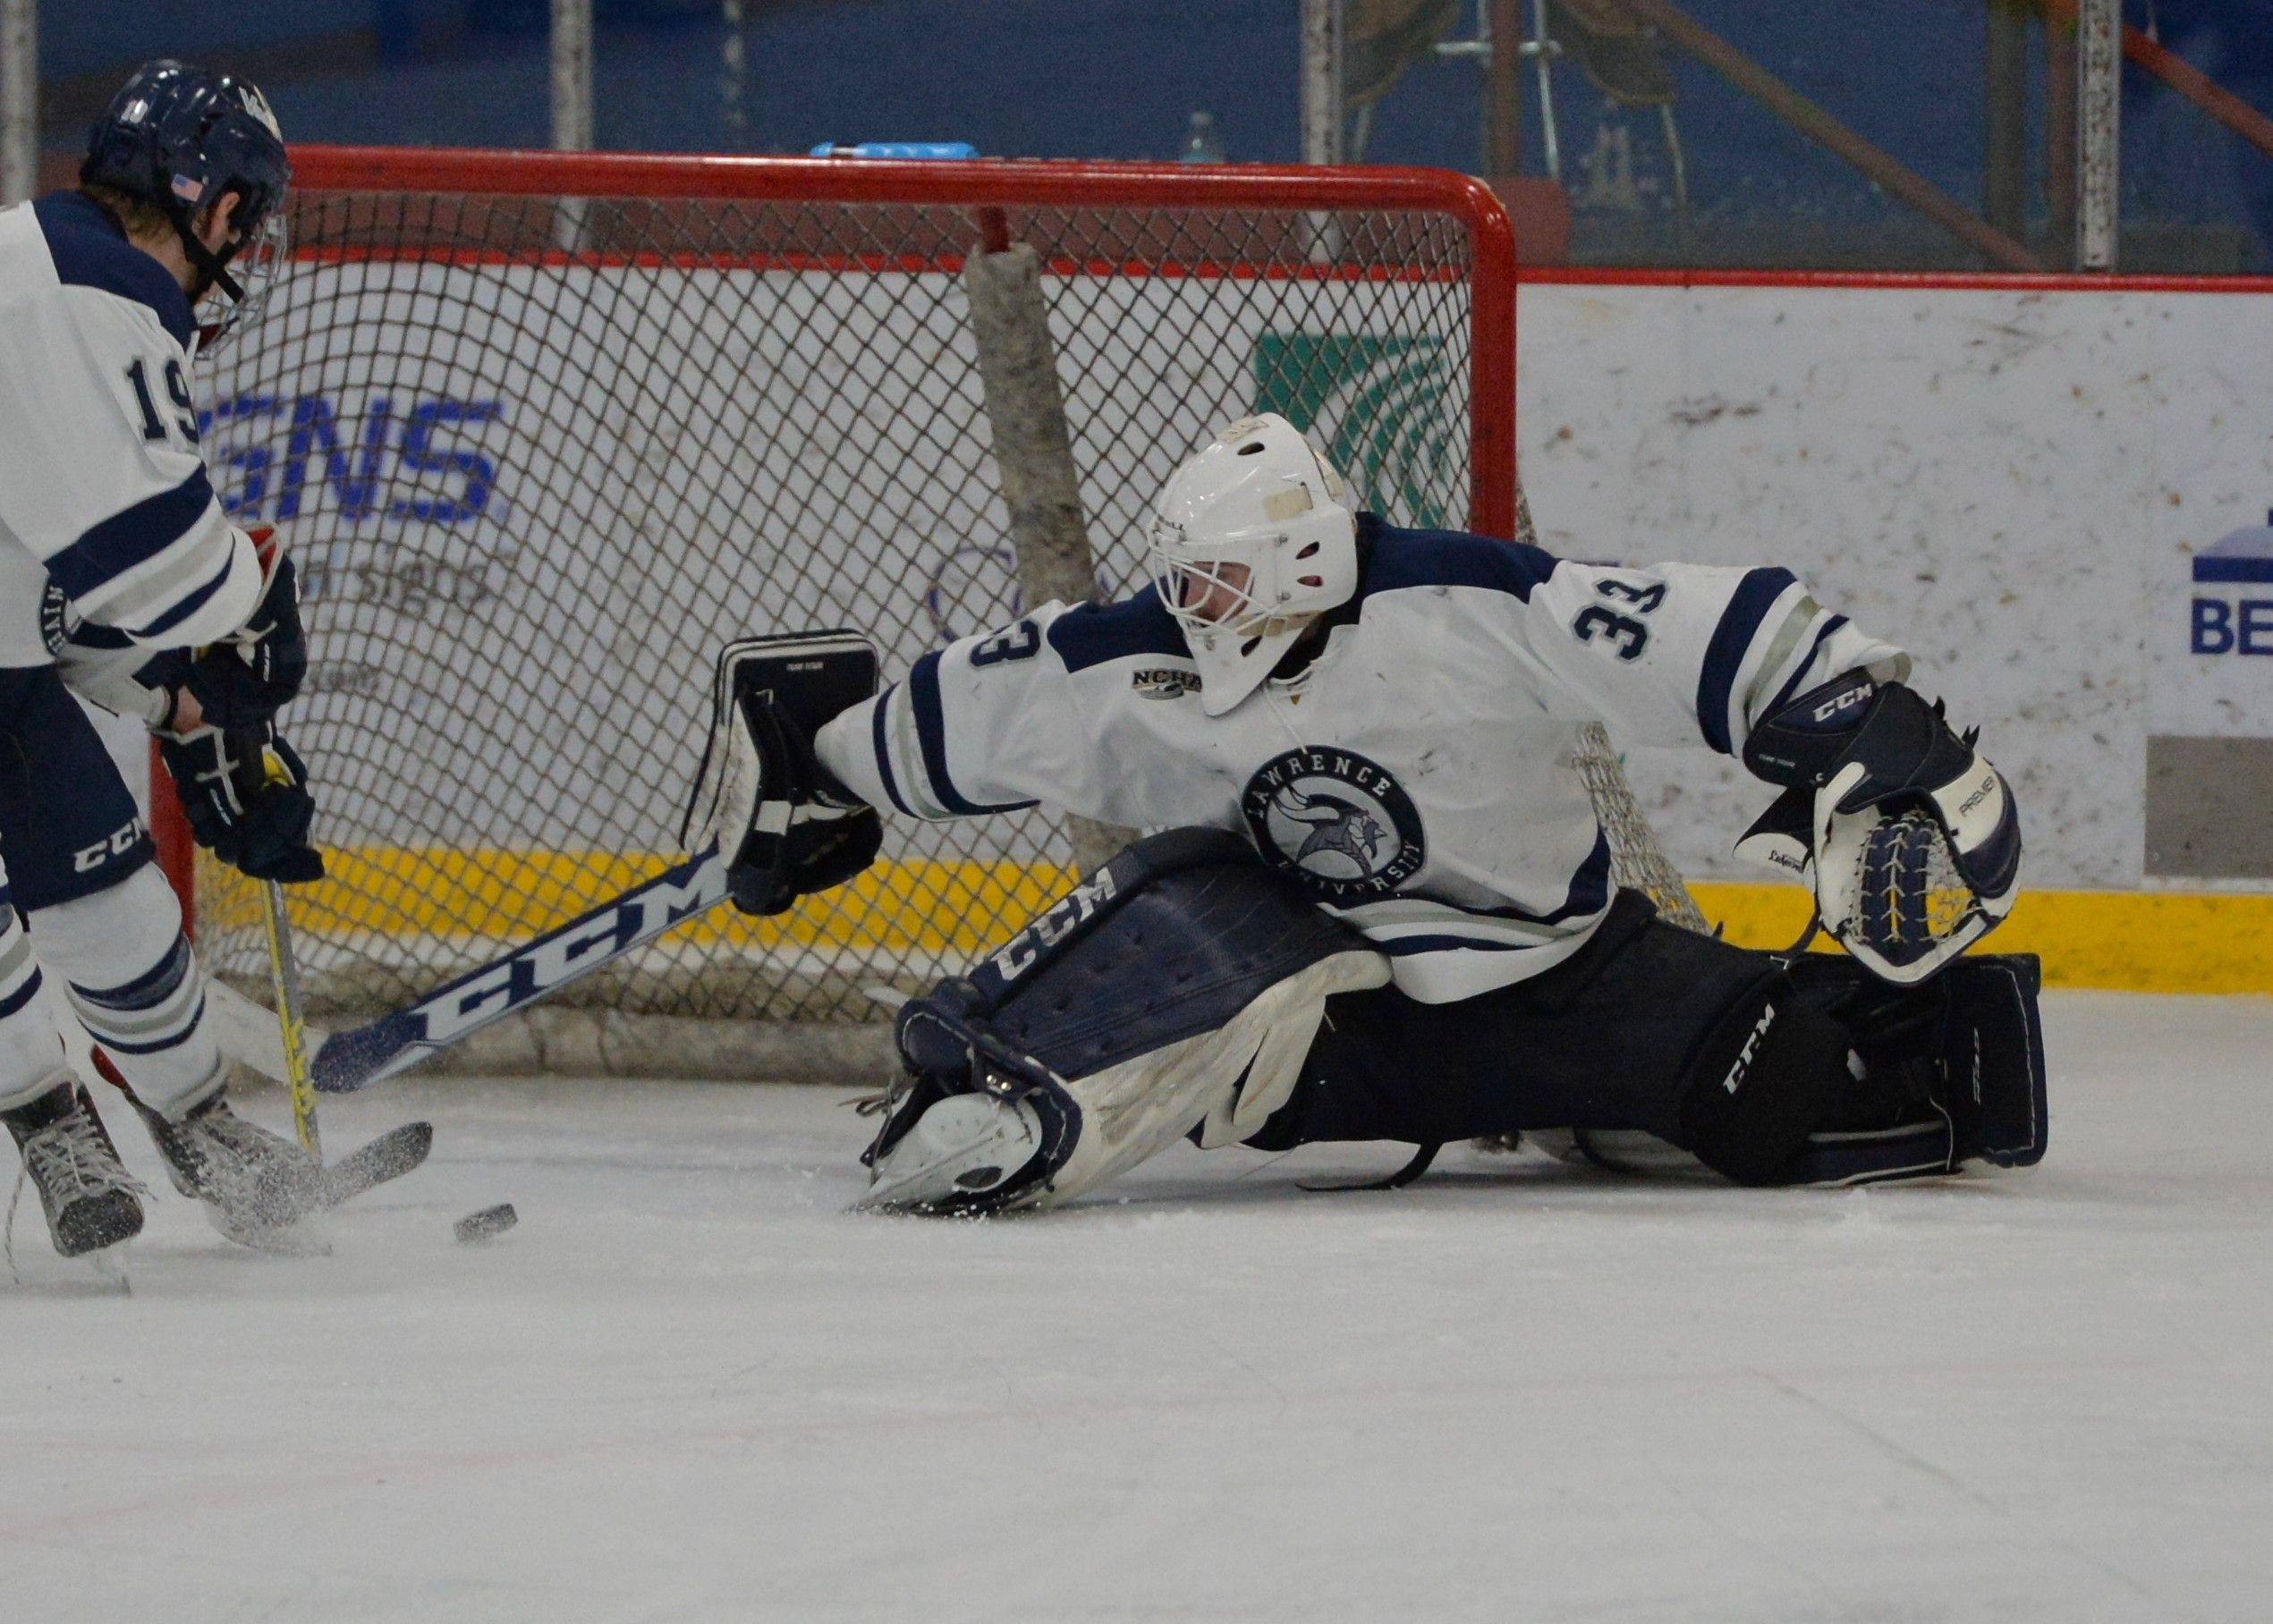 Junior goalie Evan Cline had nine wins and a shutout last season, posting a .909 save percentage and 3.16 goals against average.